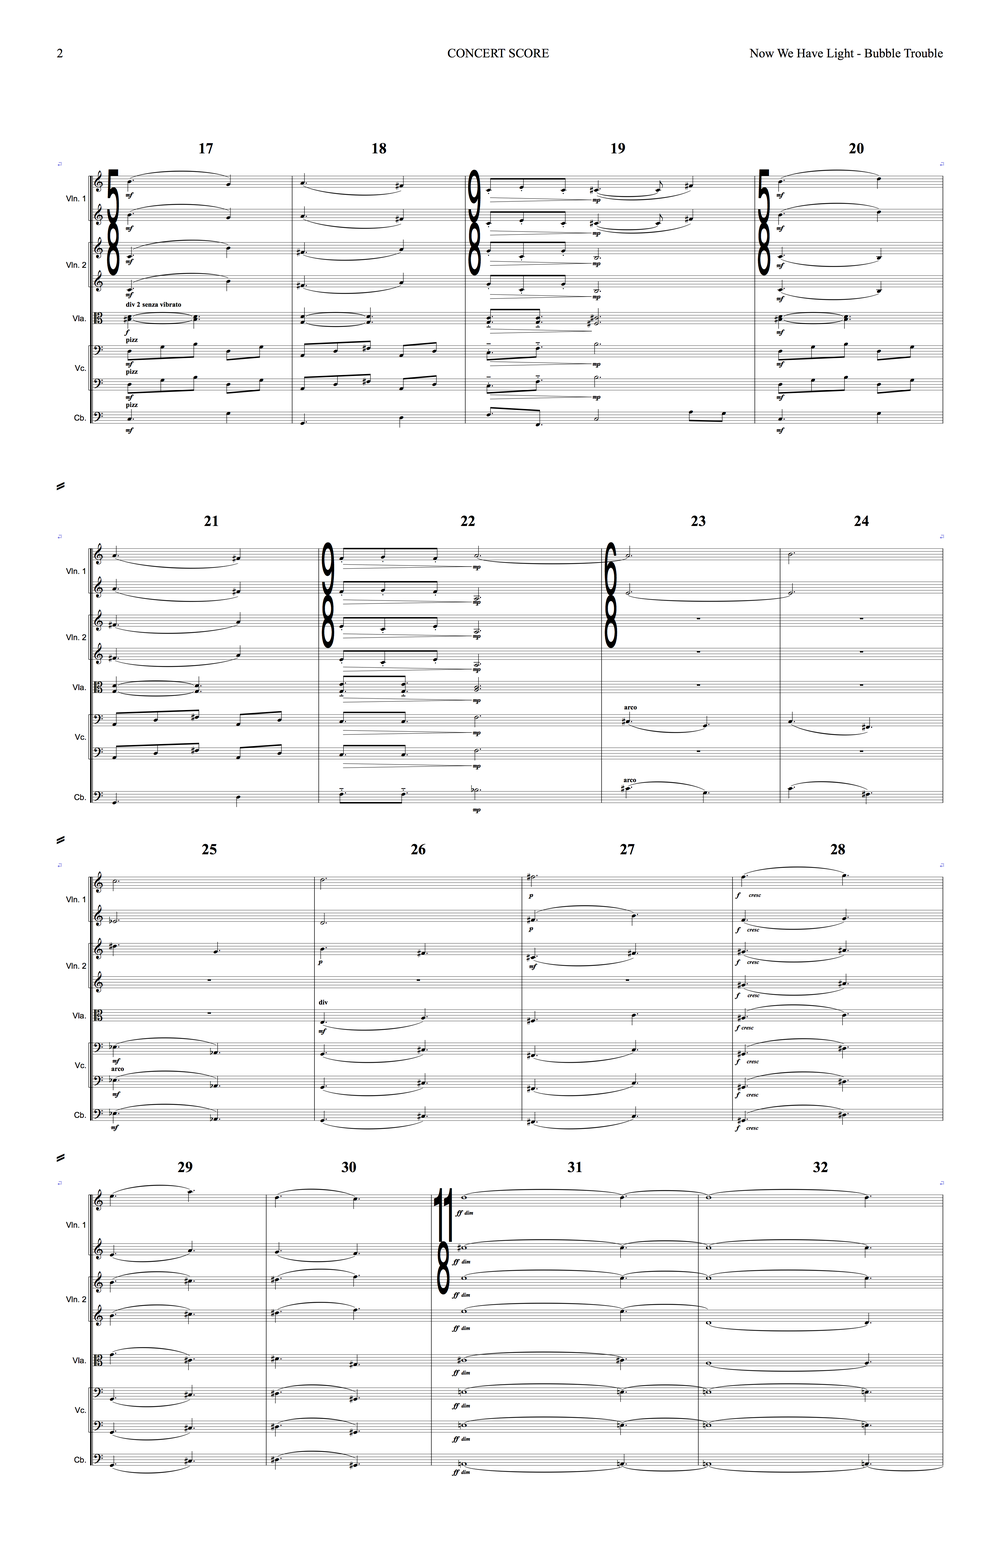 Sanguine Hum - 'Bubble Trouble' - string arrangement page 2